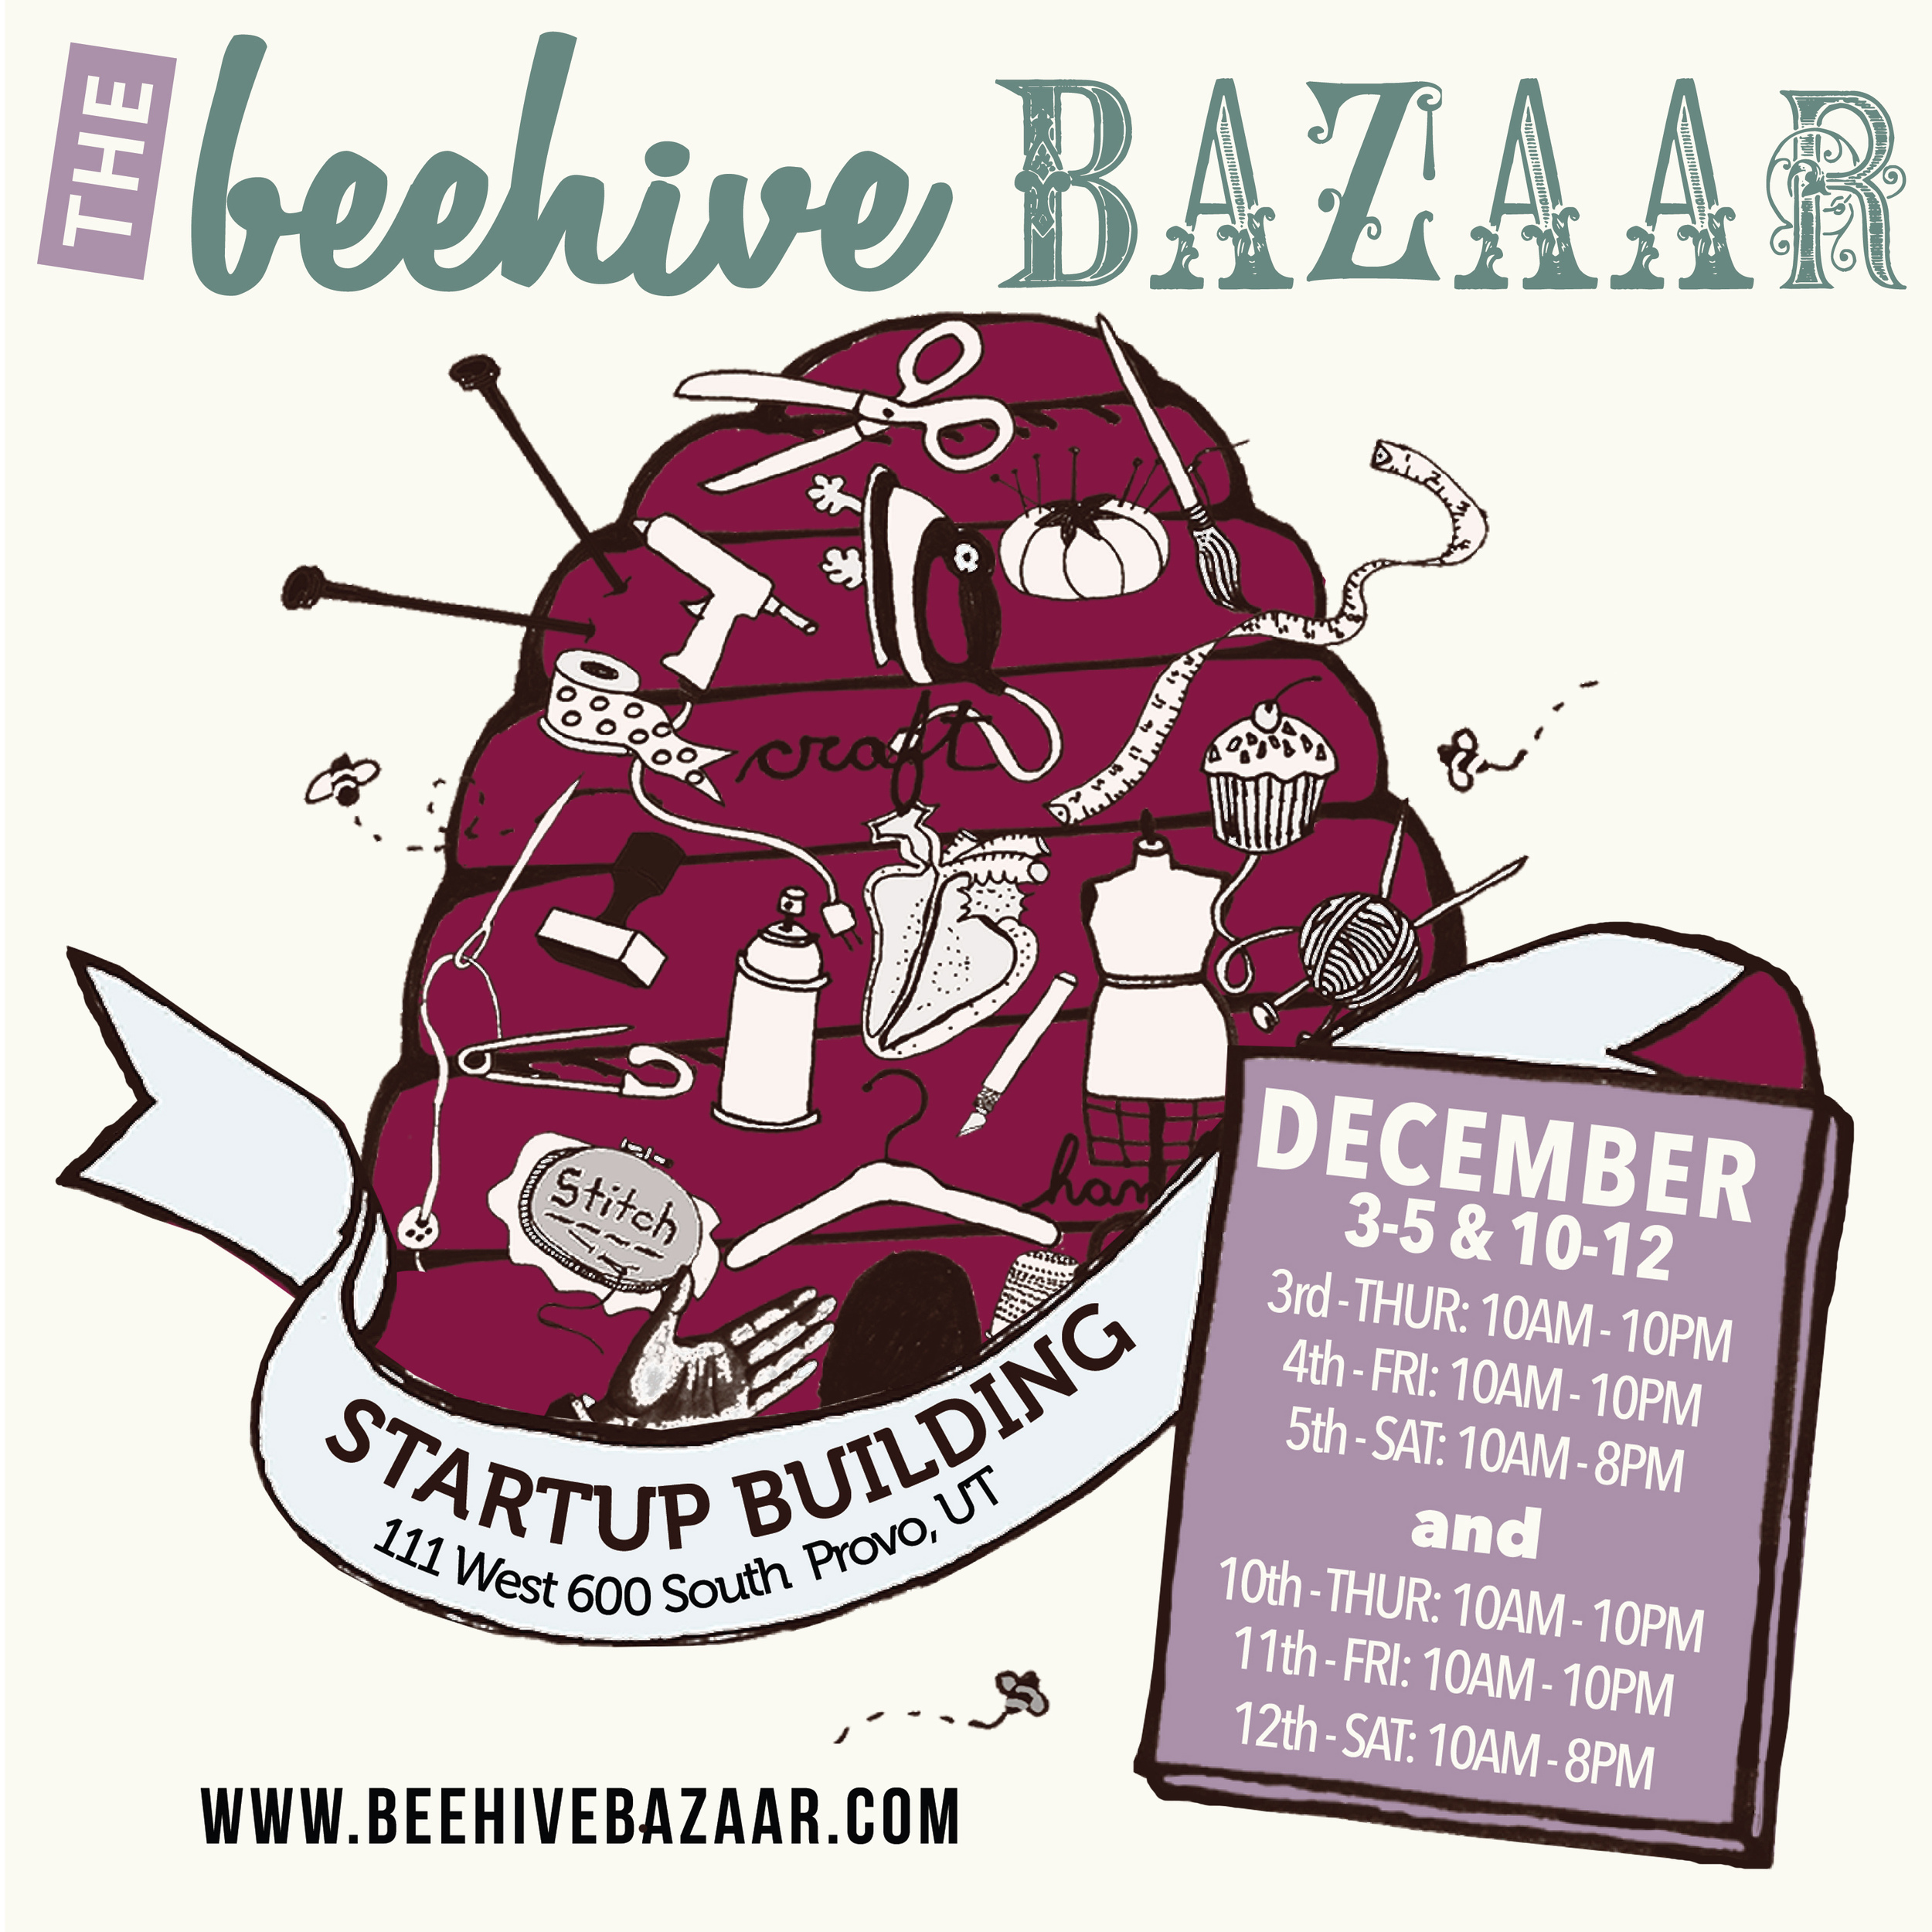 Winter 2015 Beehive Bazaar postcard